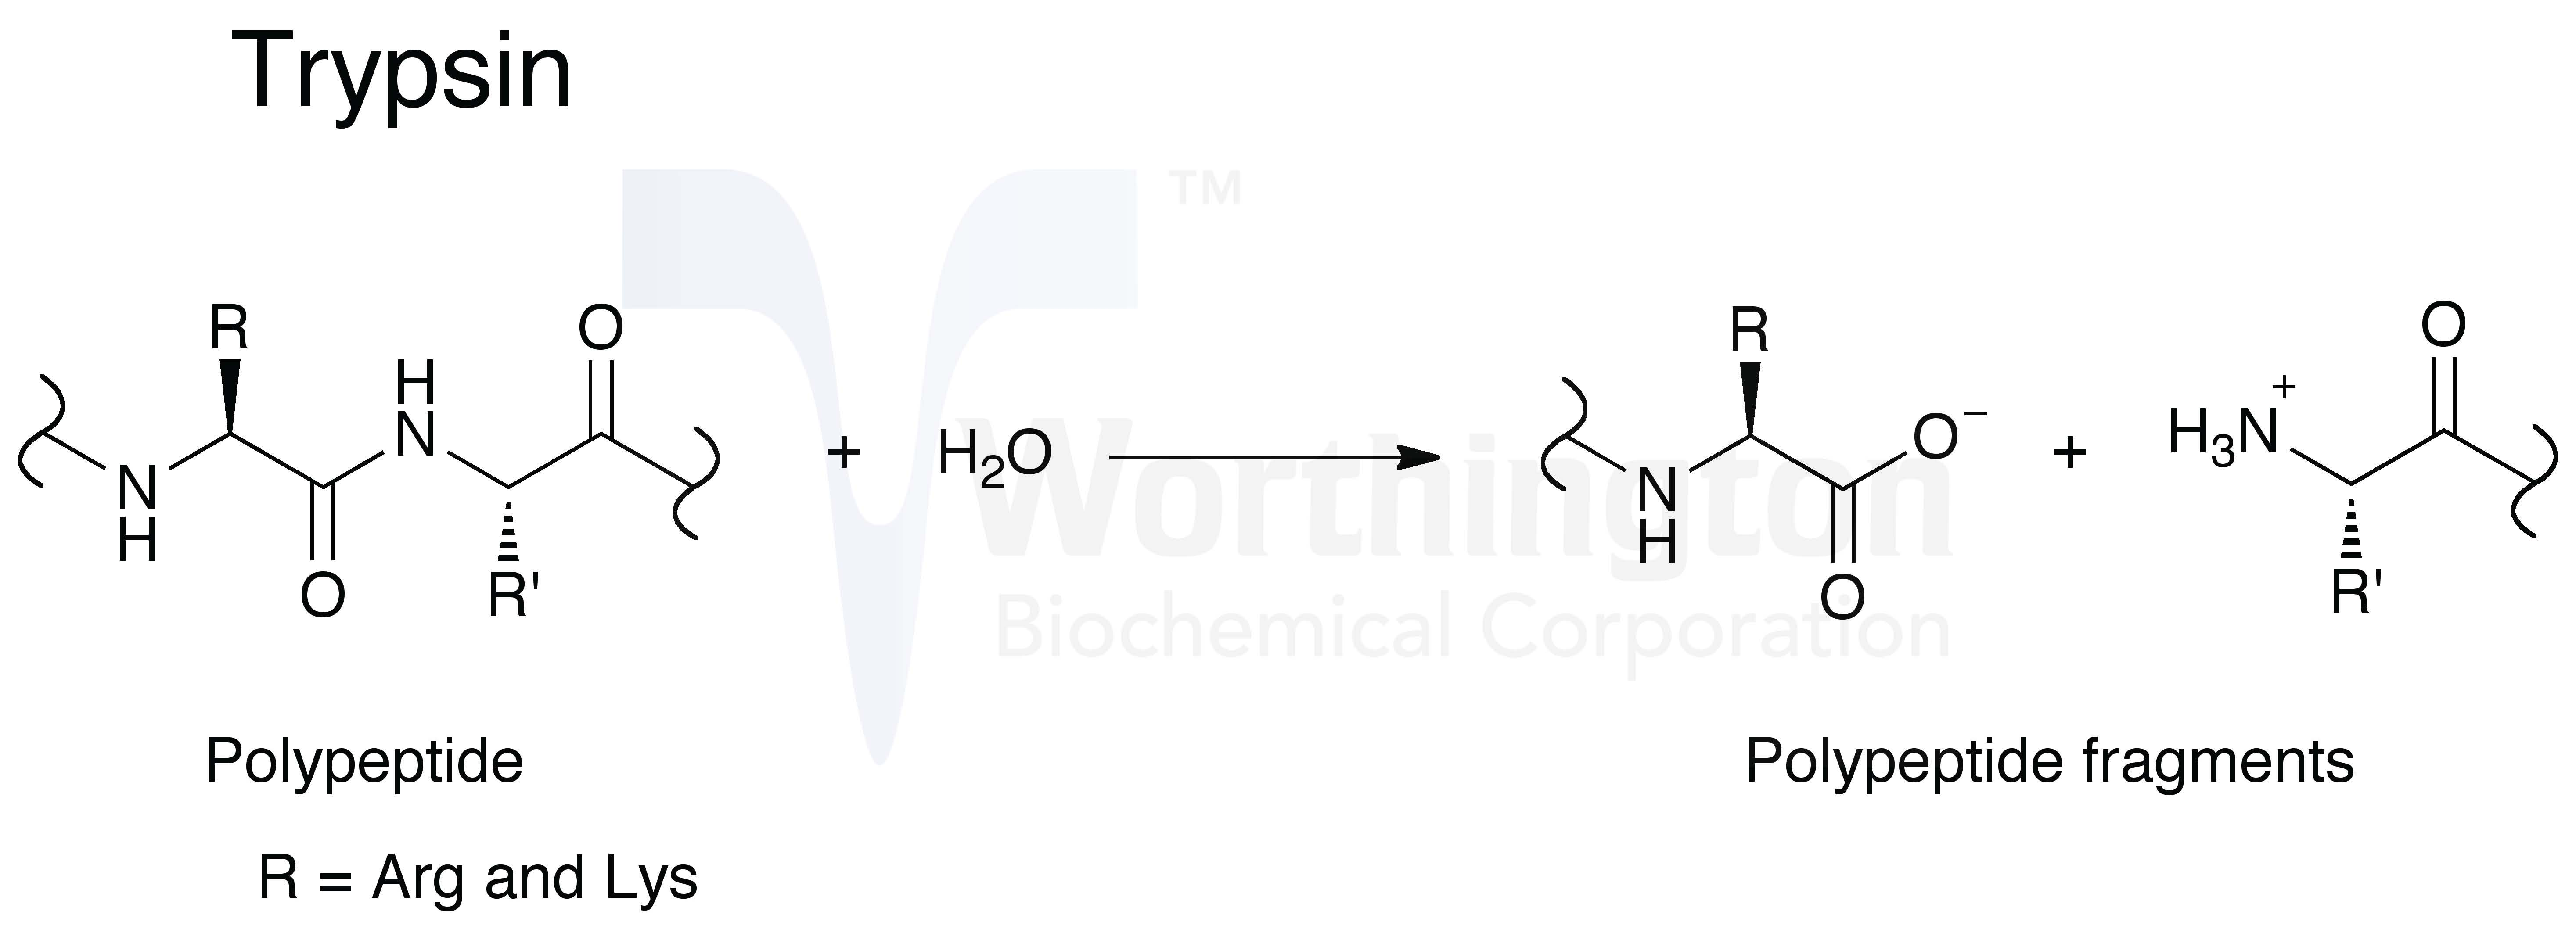 Enzymatic reaction image will open in a new window